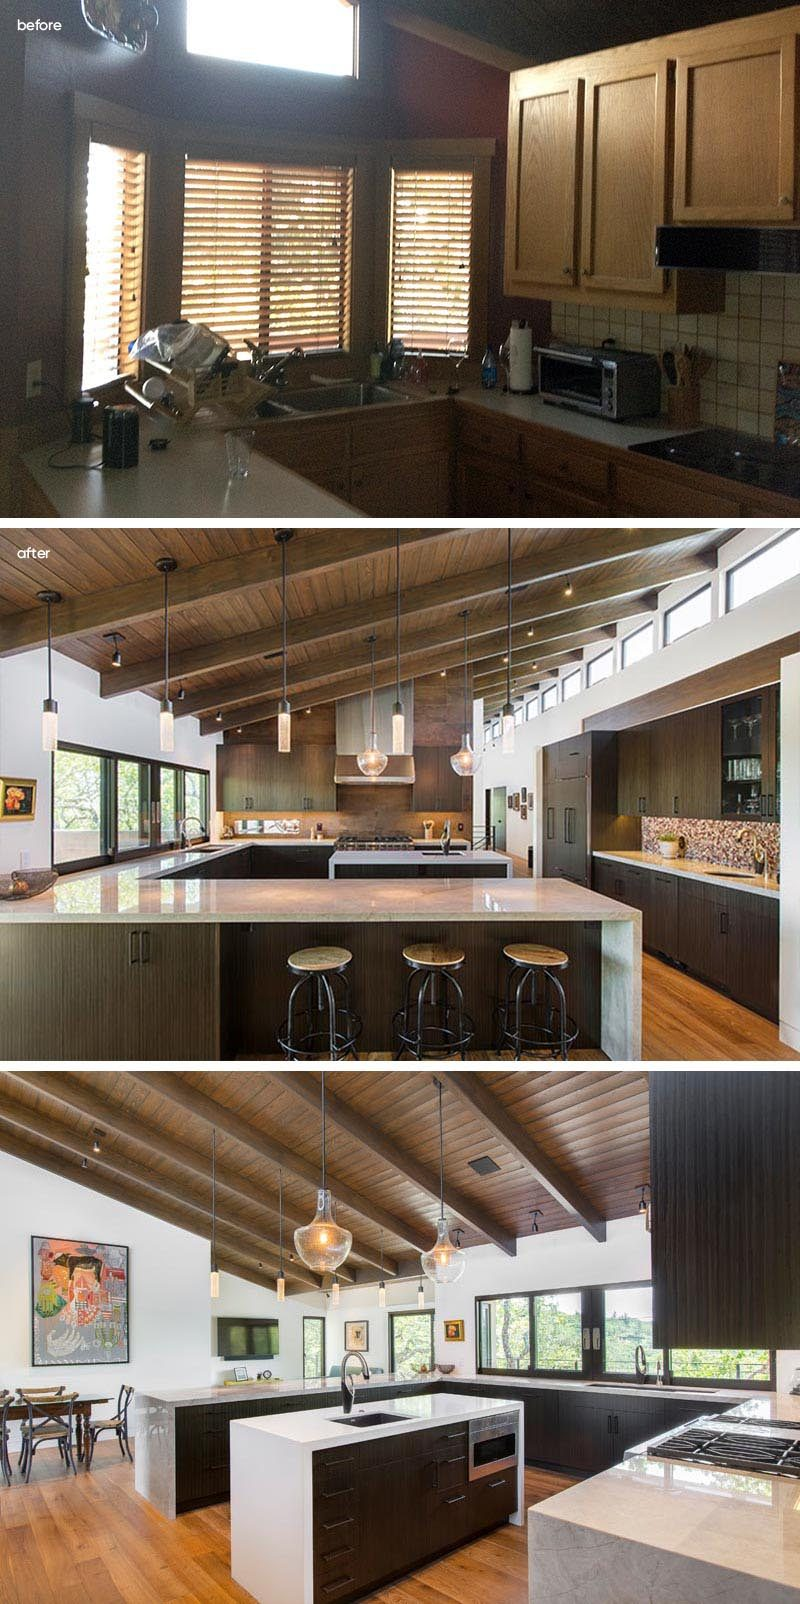 Before & After - Prior to the renovation, the kitchen was small and dark. The new kitchen is expansive and bright with rows of windows, plenty of cabinets, and a central island. #KitchenRenovation #KitchenDesign #ModernKitchen